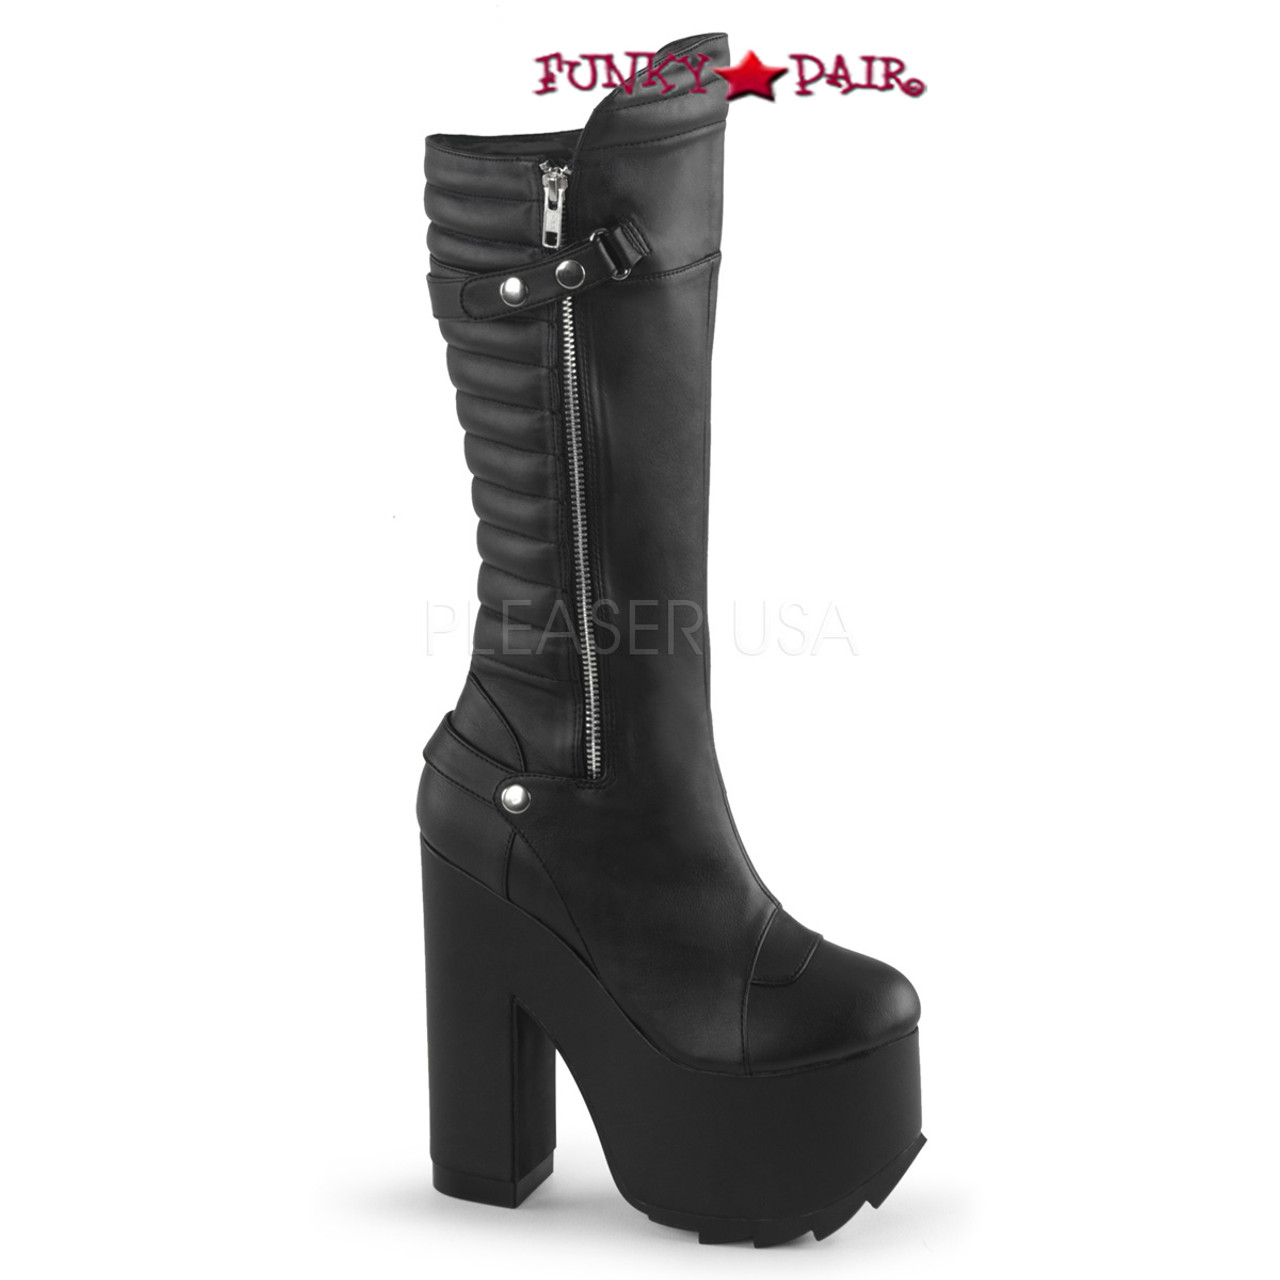 15e50024ad3d Cramps-200, 6.25 Inch Chunky Heel Knee High Boots